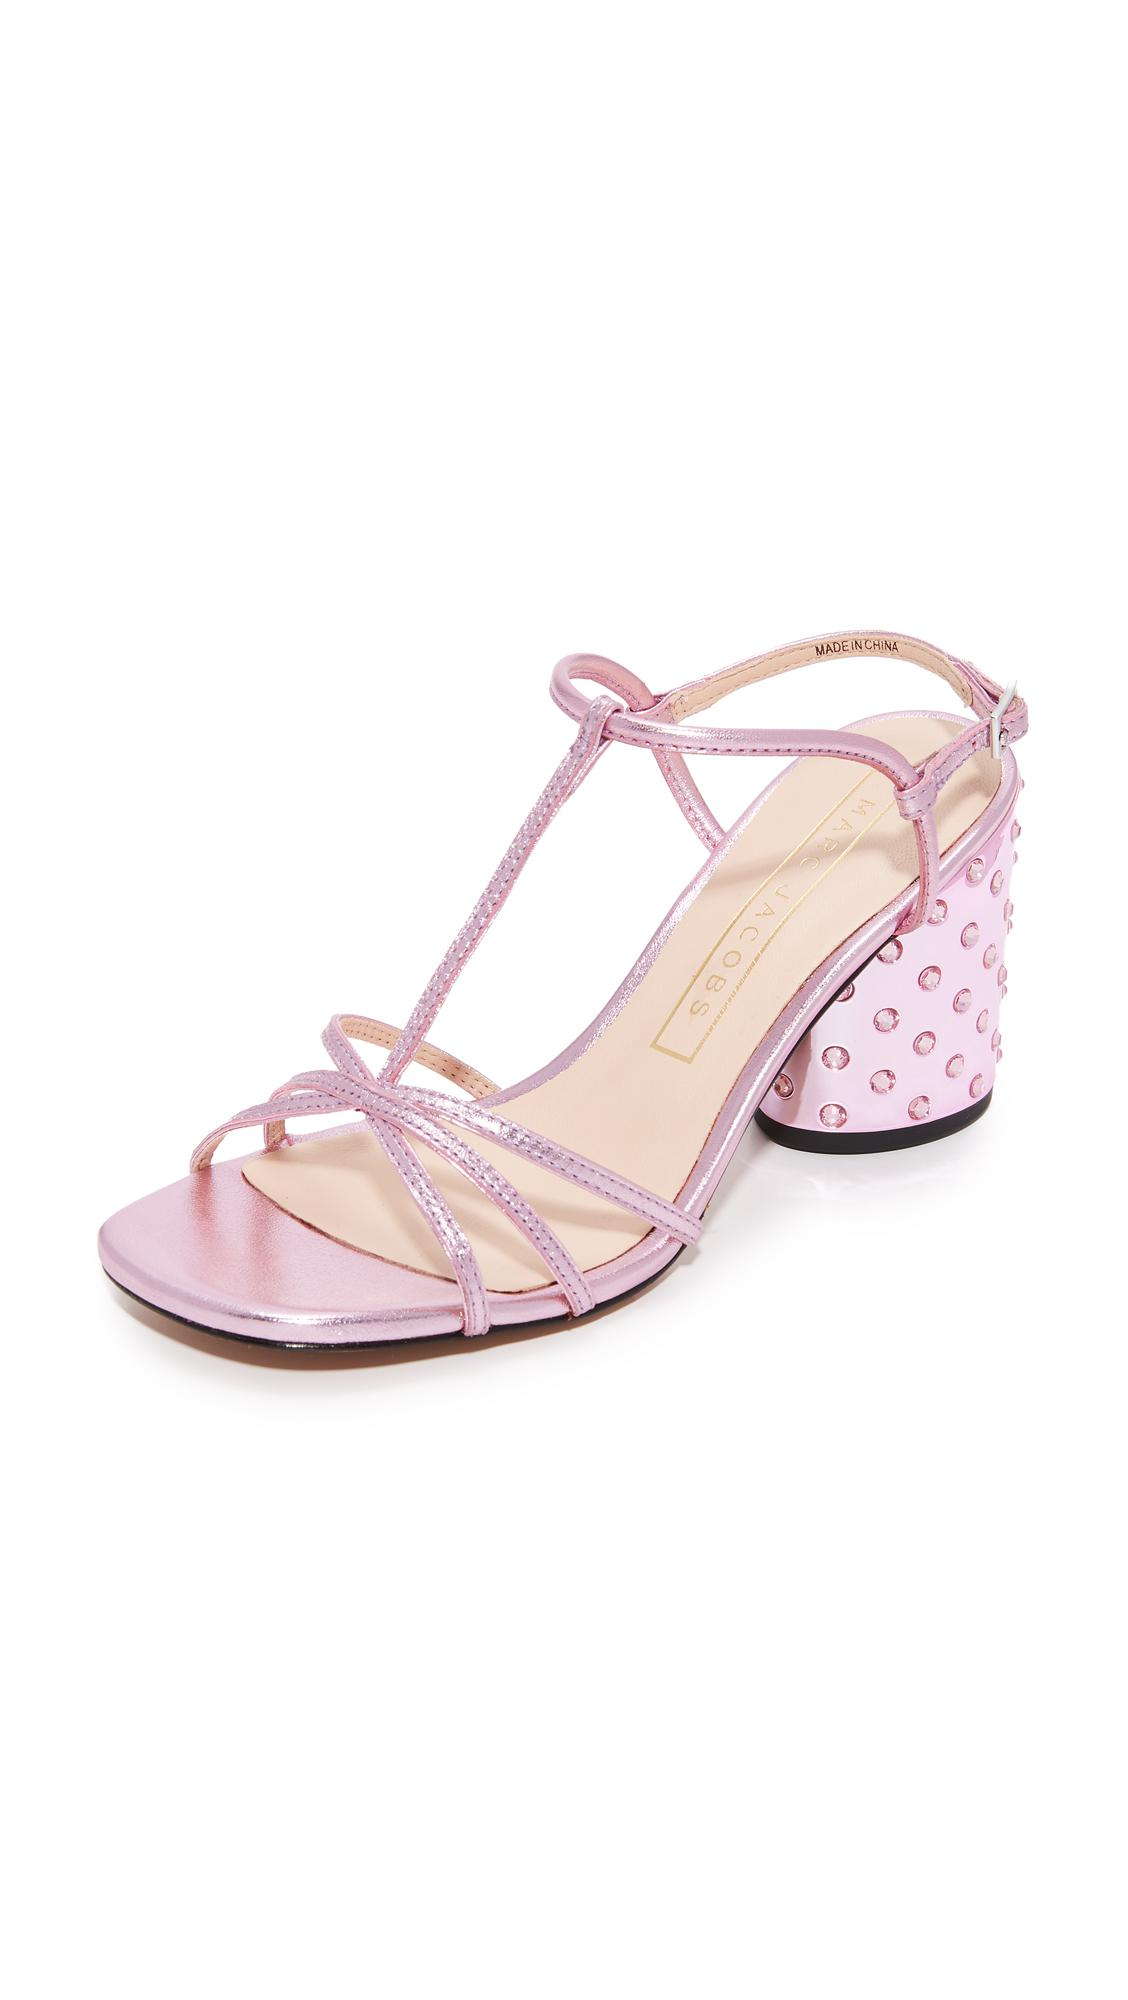 c0a018b940ea Marc Jacobs Sheena T-strap Sandals in Pink - Lyst